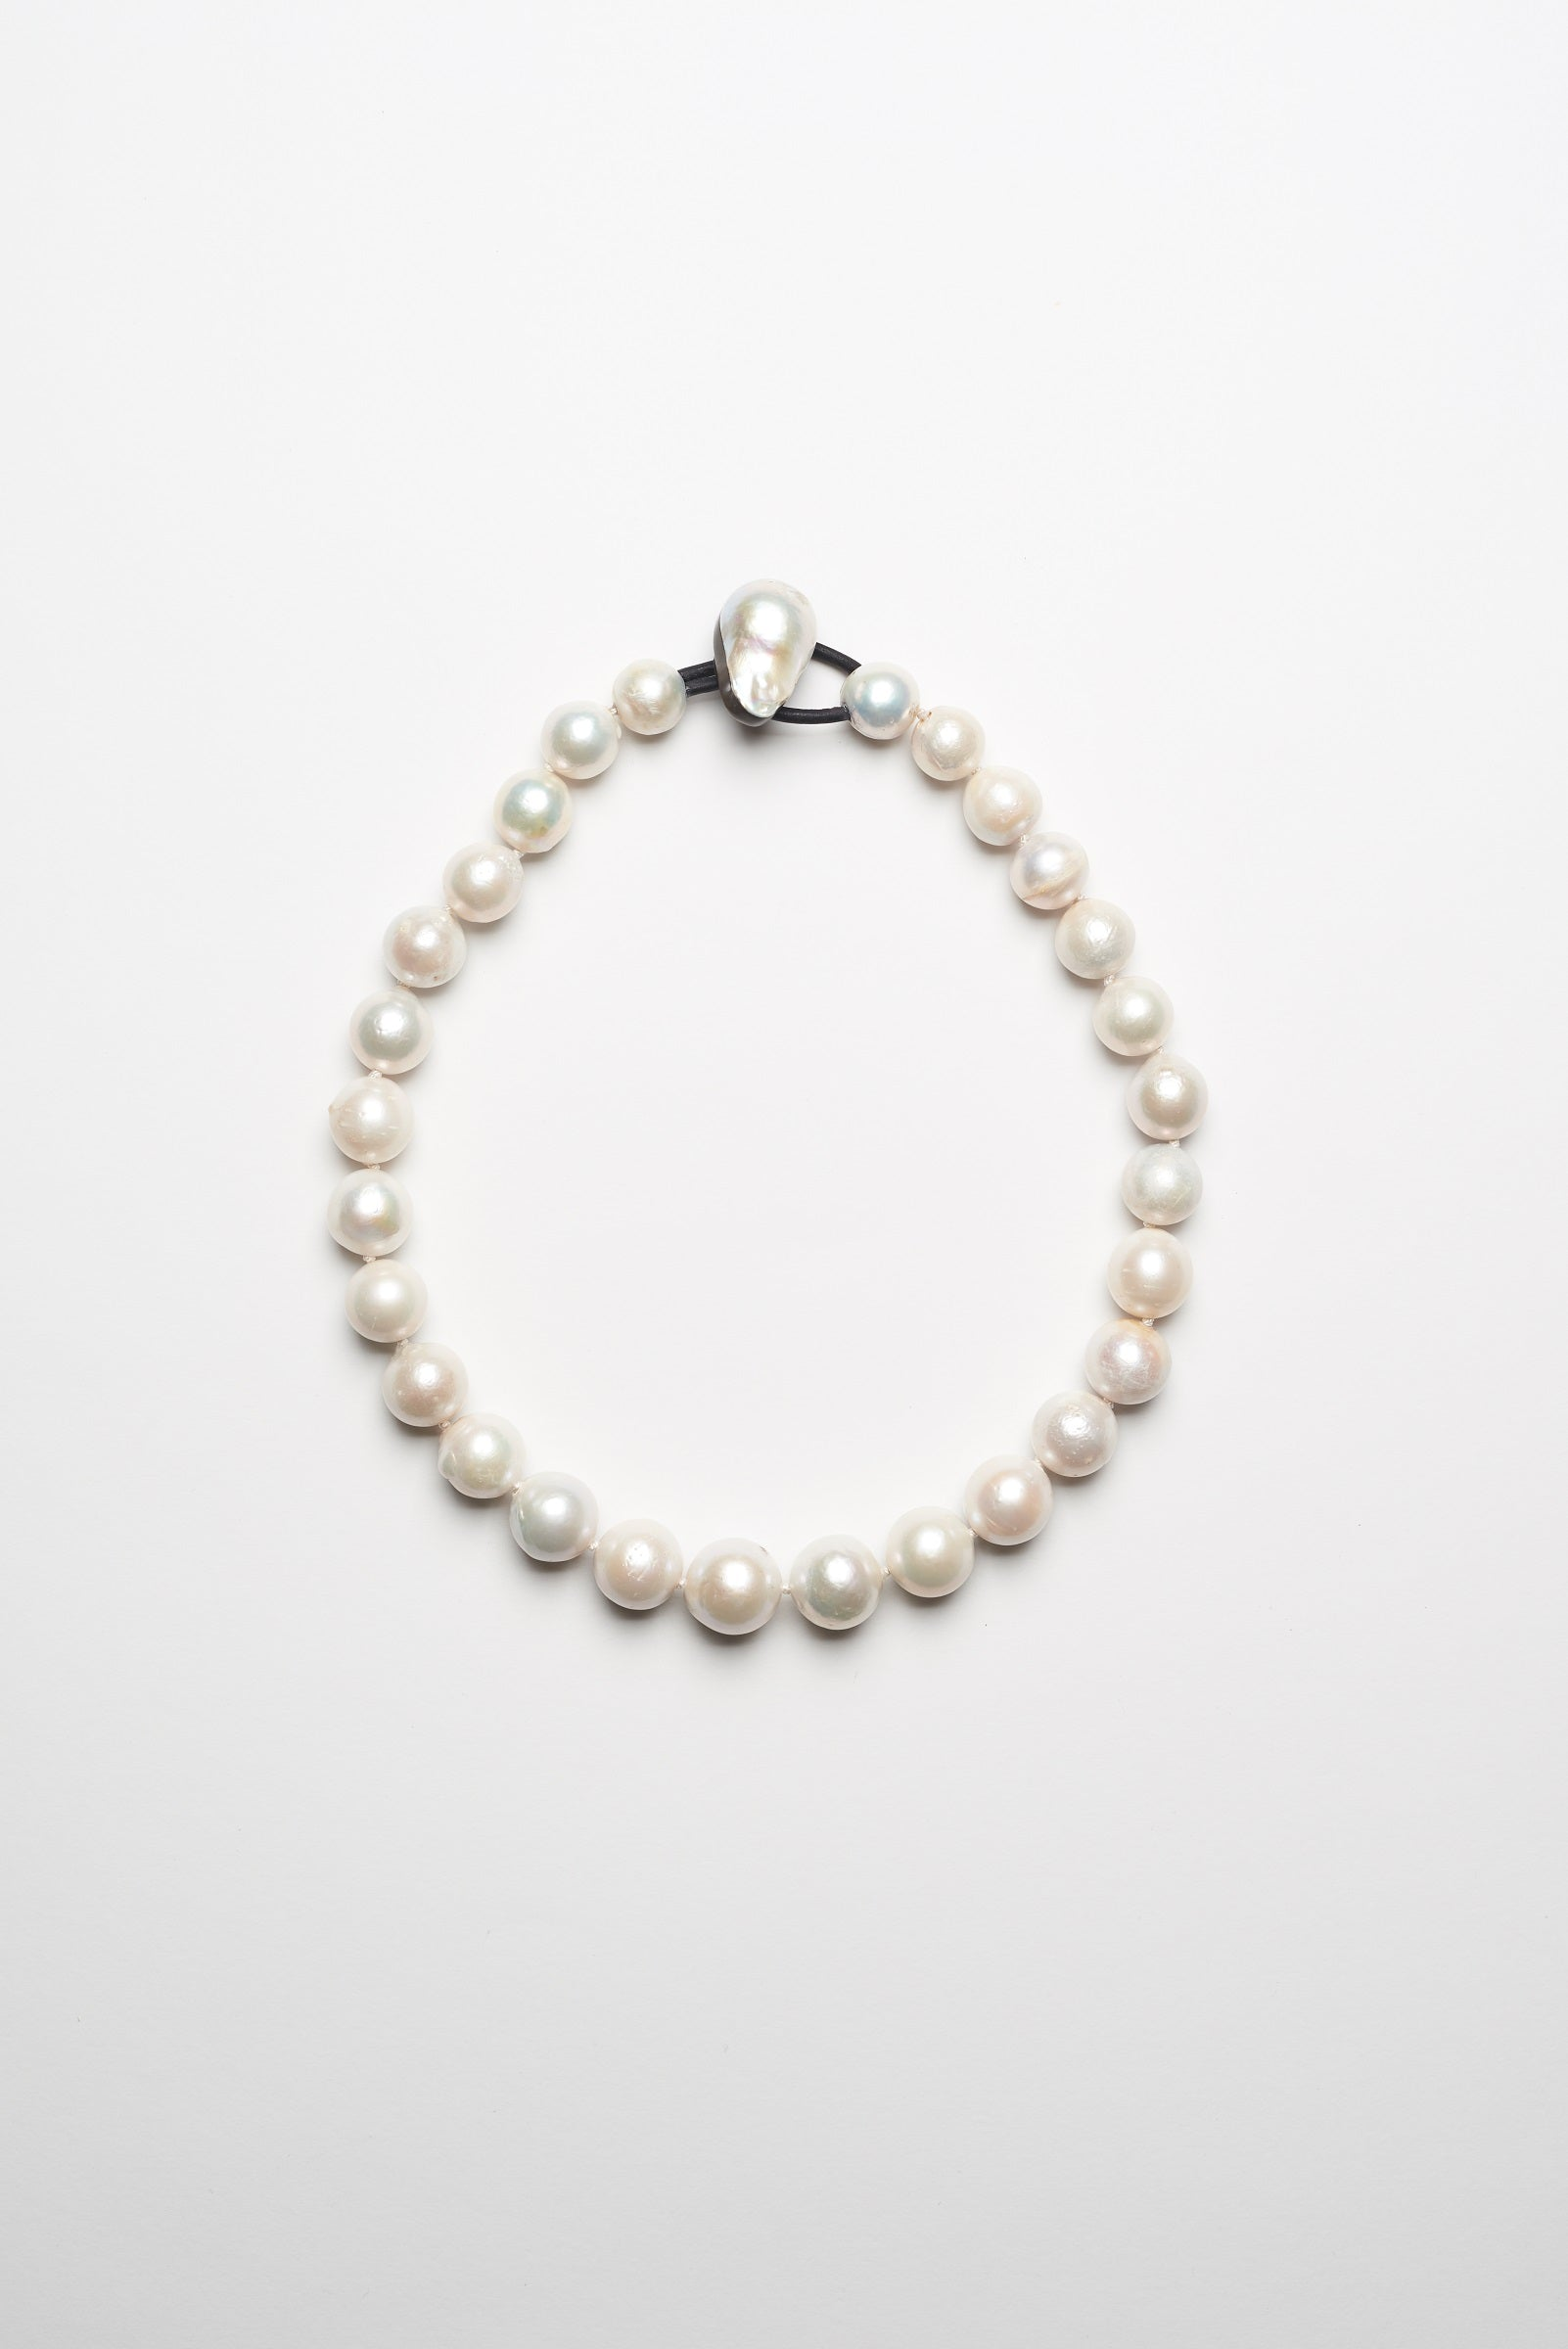 Necklace in fresh water pearls - 1 row